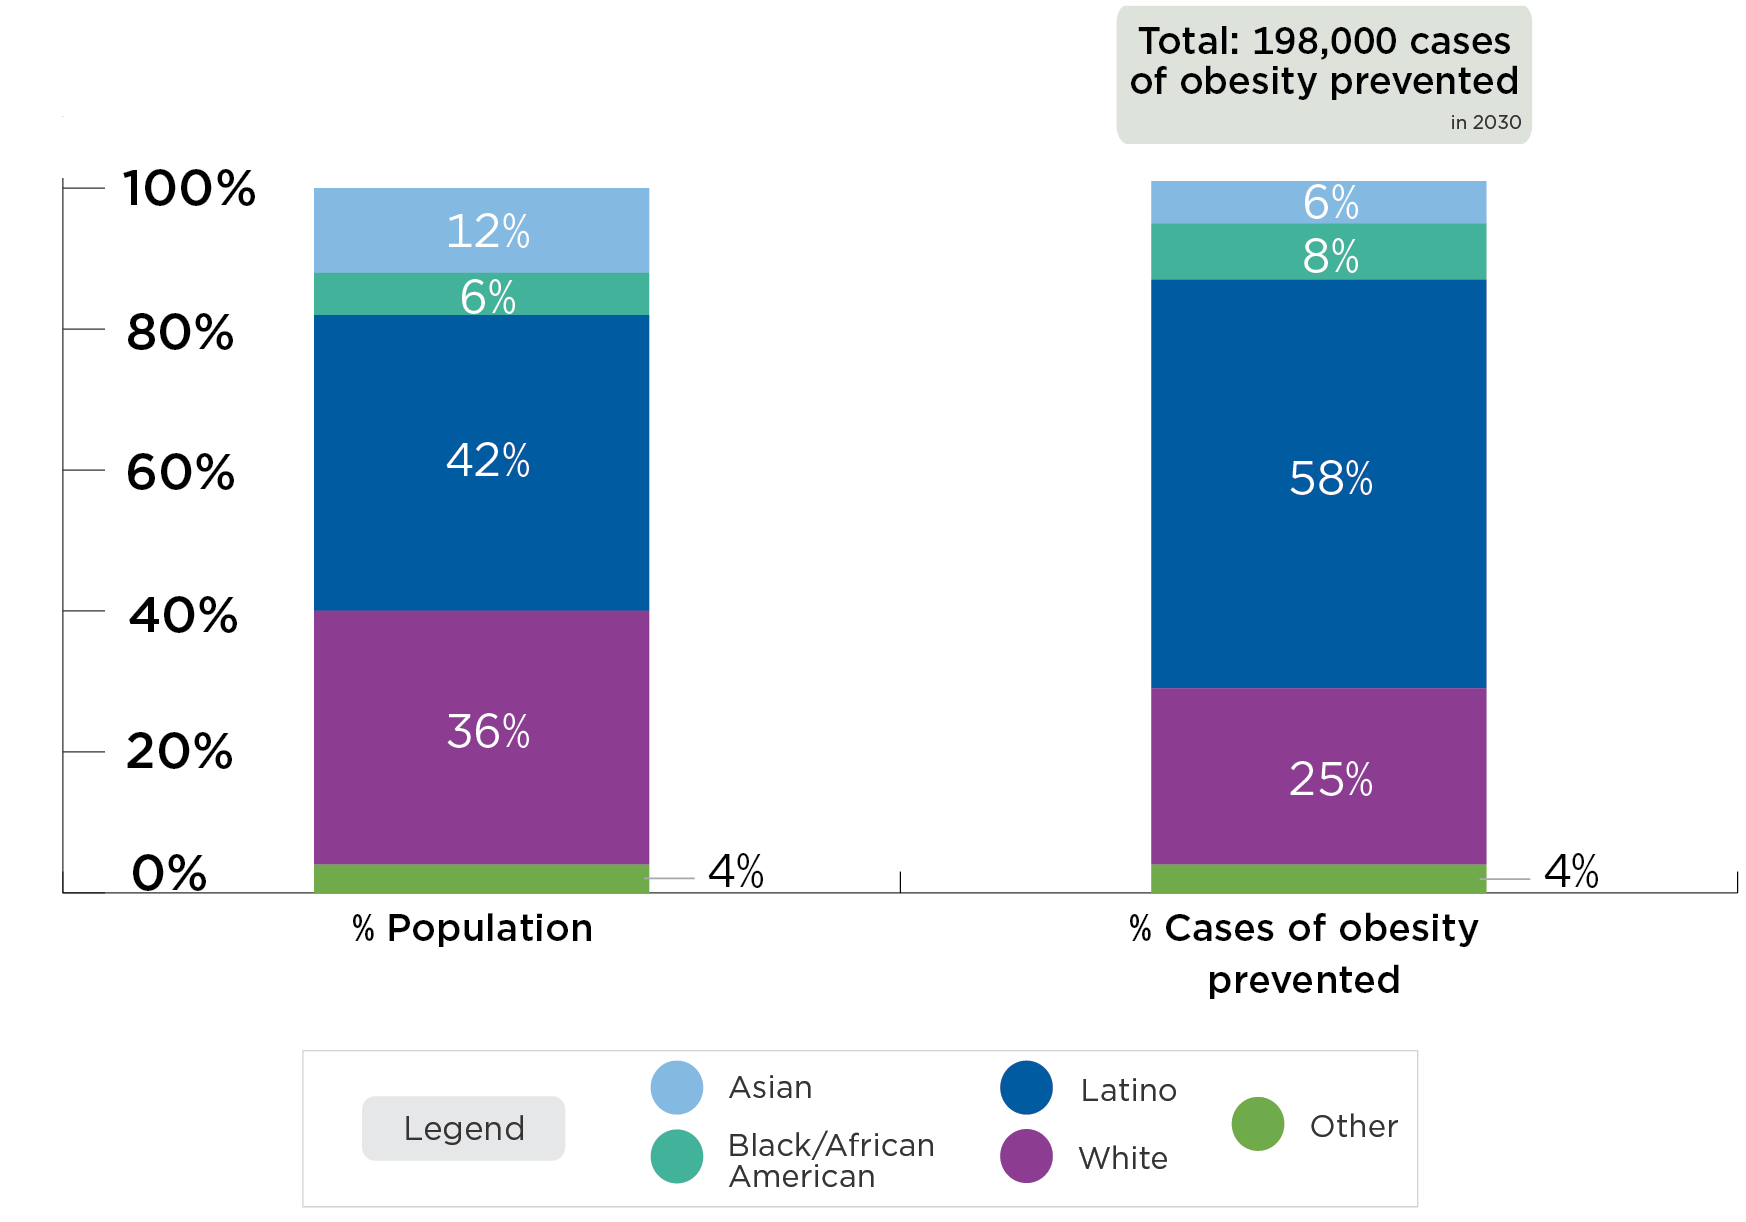 A tax in California could prevent 198,000 cases of obesity in 2030. 58% of prevented obesity cases will be among Latino Californians, while they represent 42% of the population. 8% of prevented obesity cases will be among Black/African American Californians, while they represent 6% of the population.